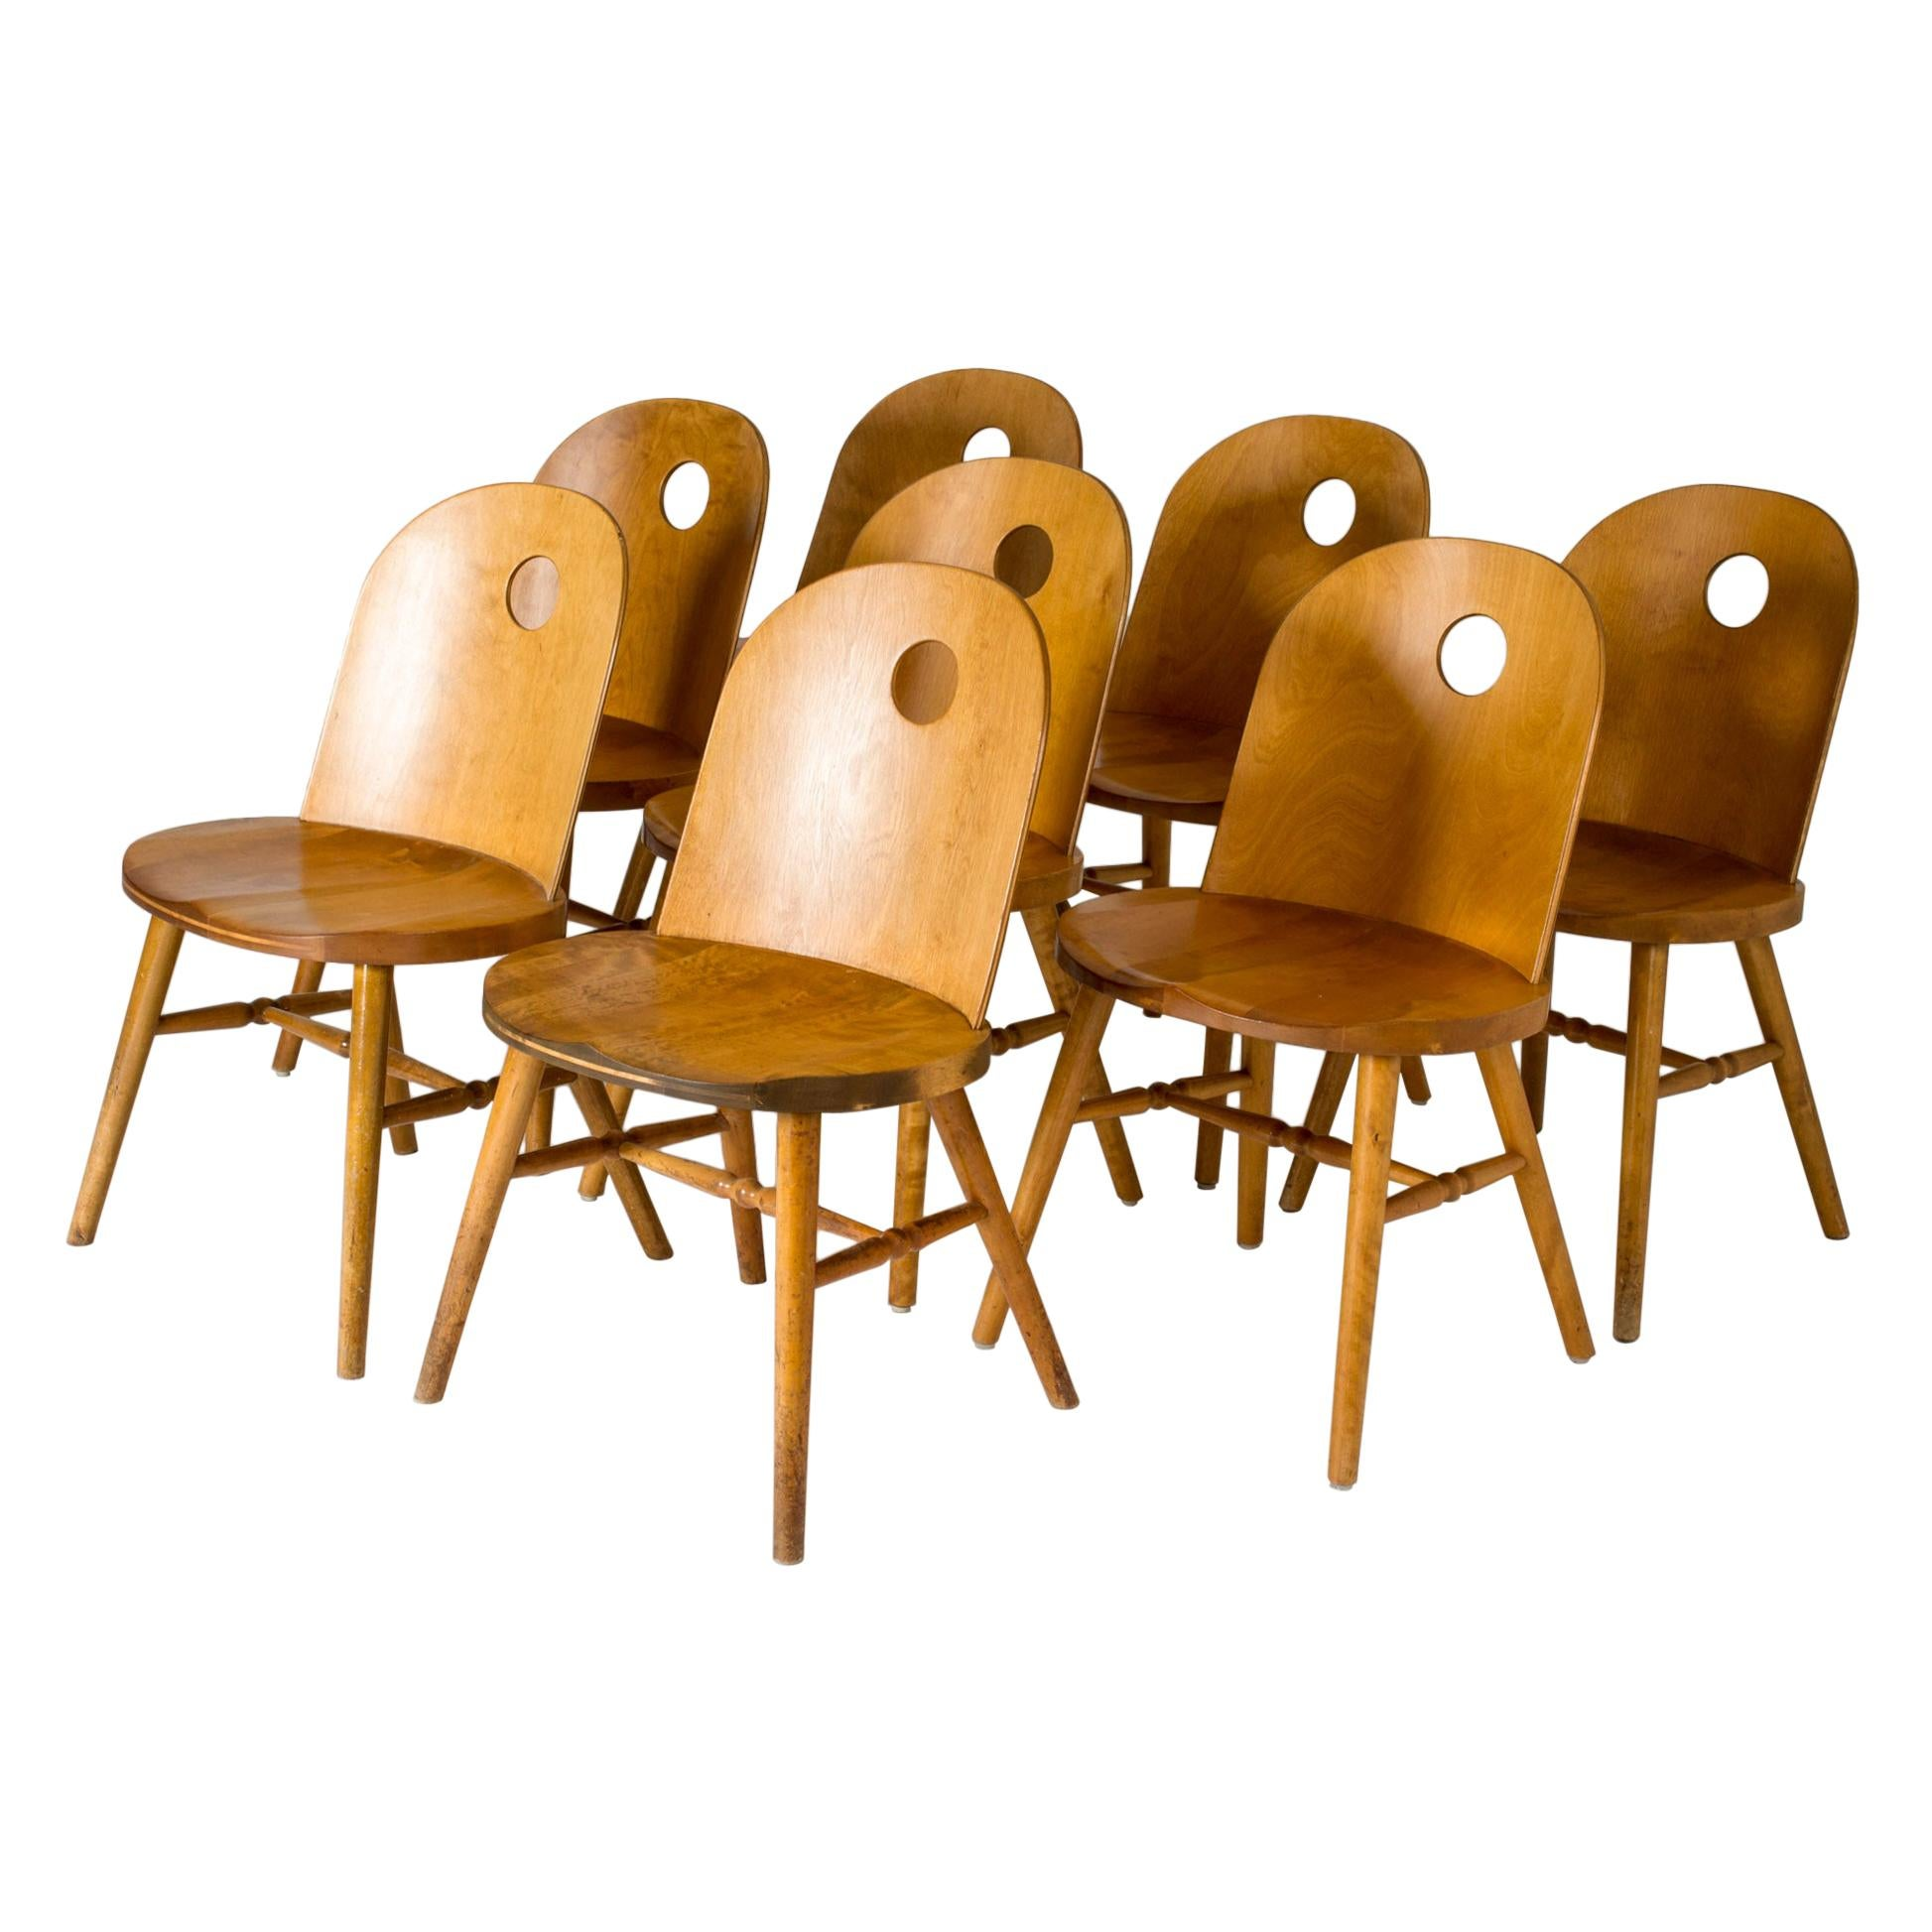 Set of Eight Functionalist Dining Chairs by Uno Åhrén